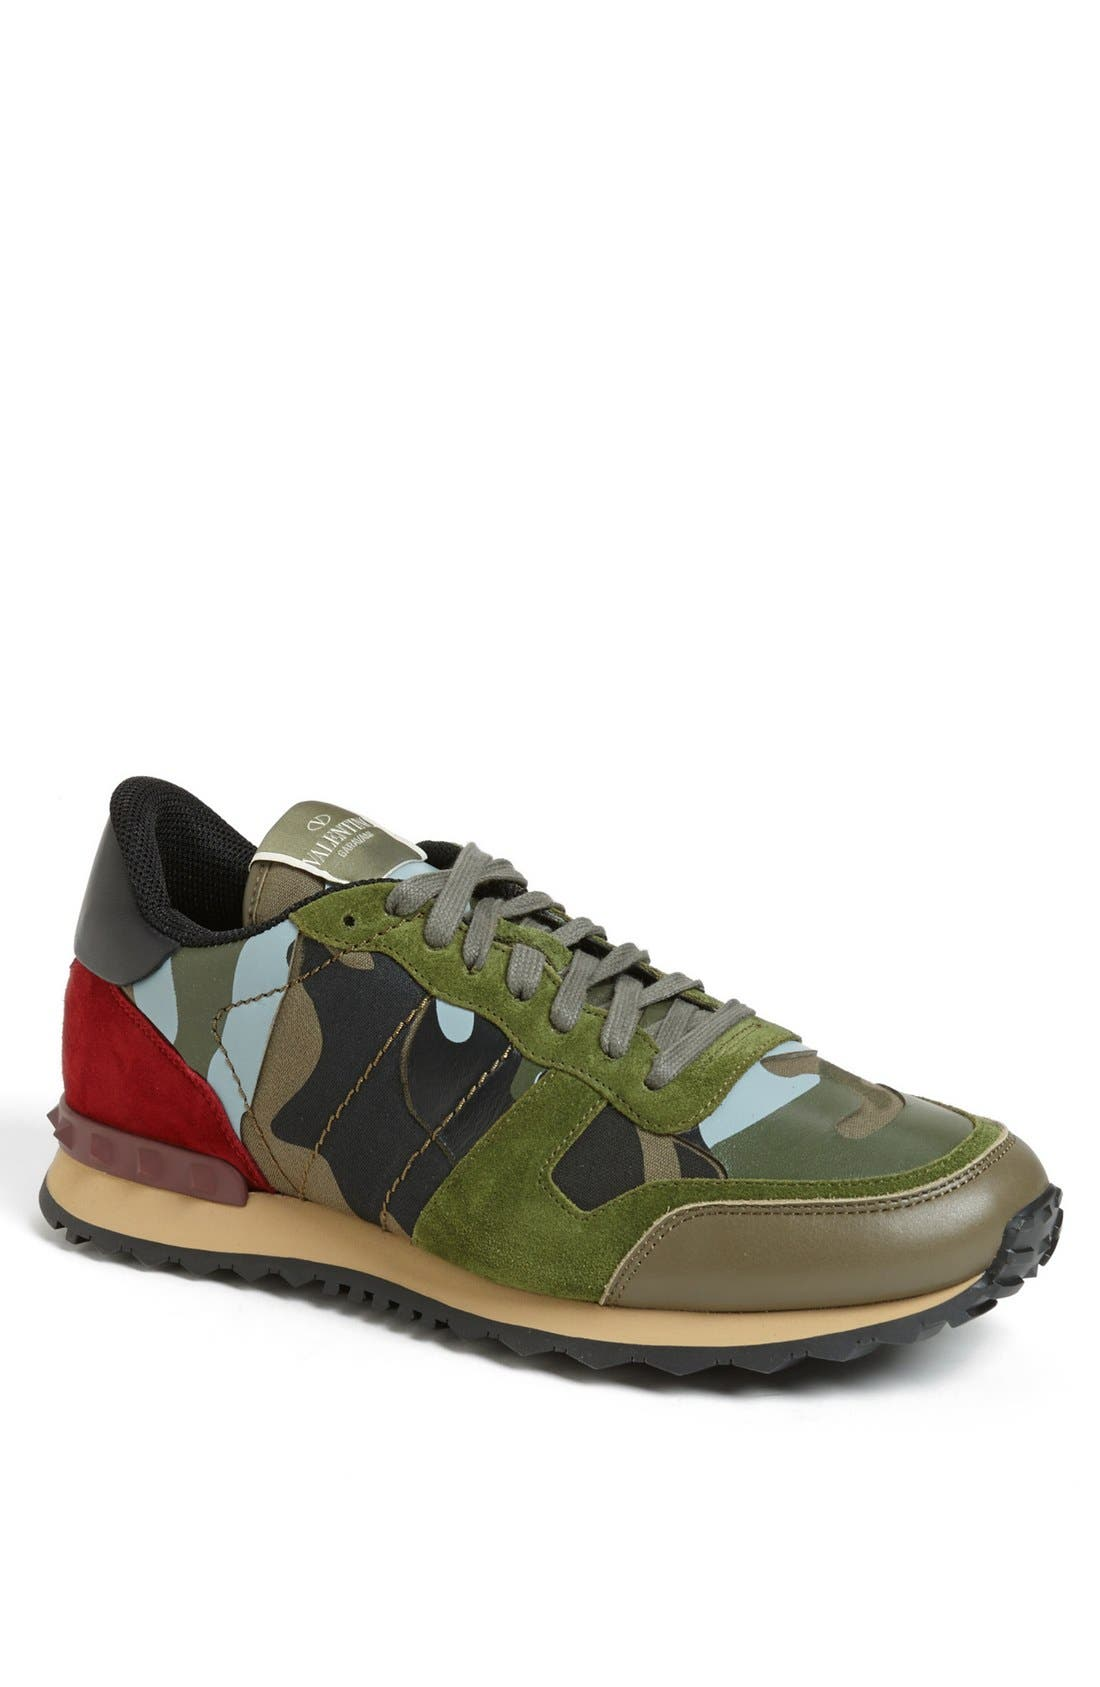 Camouflage Sneaker,                             Main thumbnail 1, color,                             Army Green